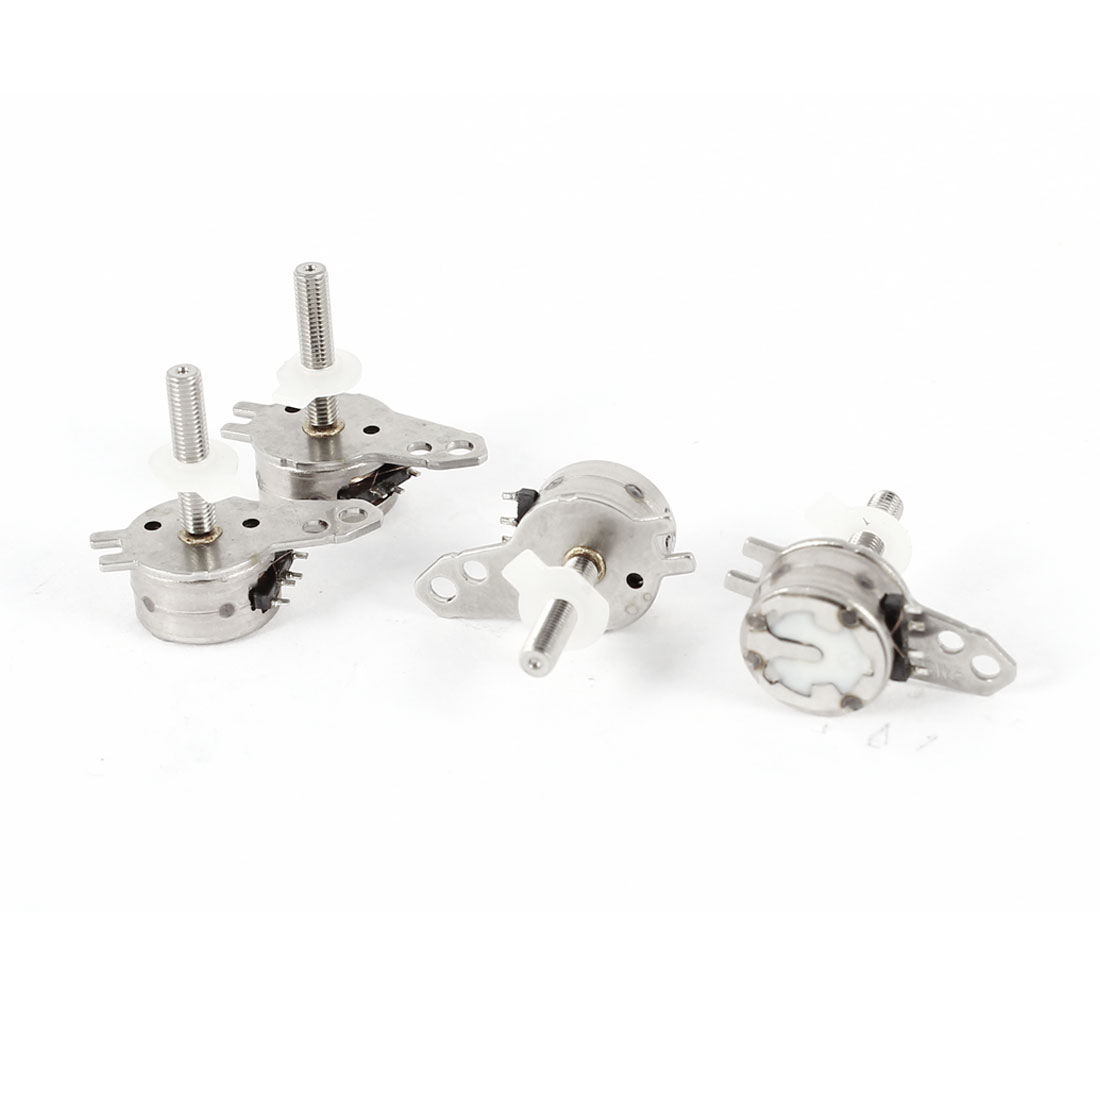 DC 5V Two-Phase Four-Wire 7mm Dia Mini Stepper Motor Replacement 4 Pcs